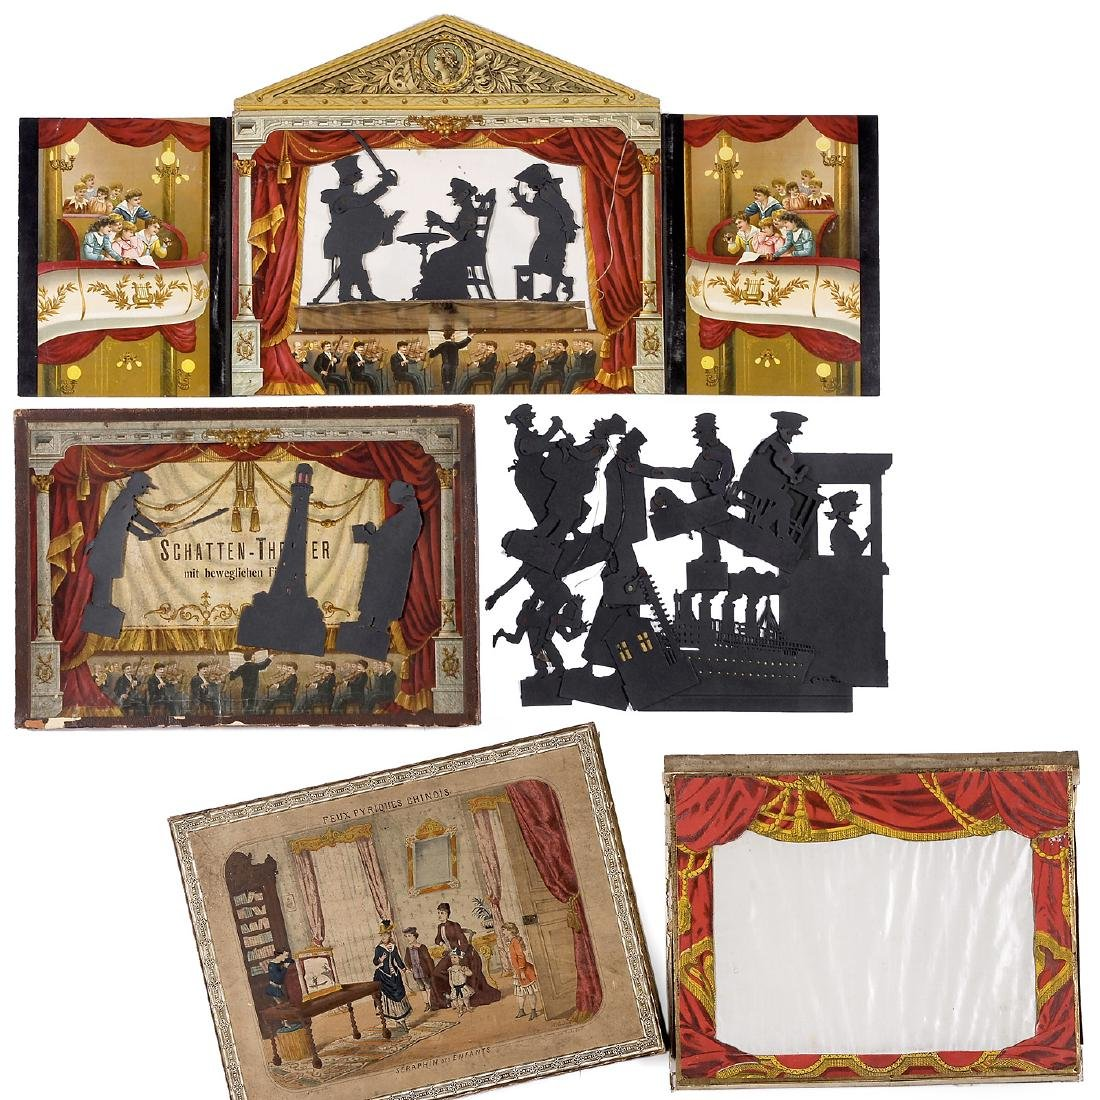 Shadow Theater, 1860-1880